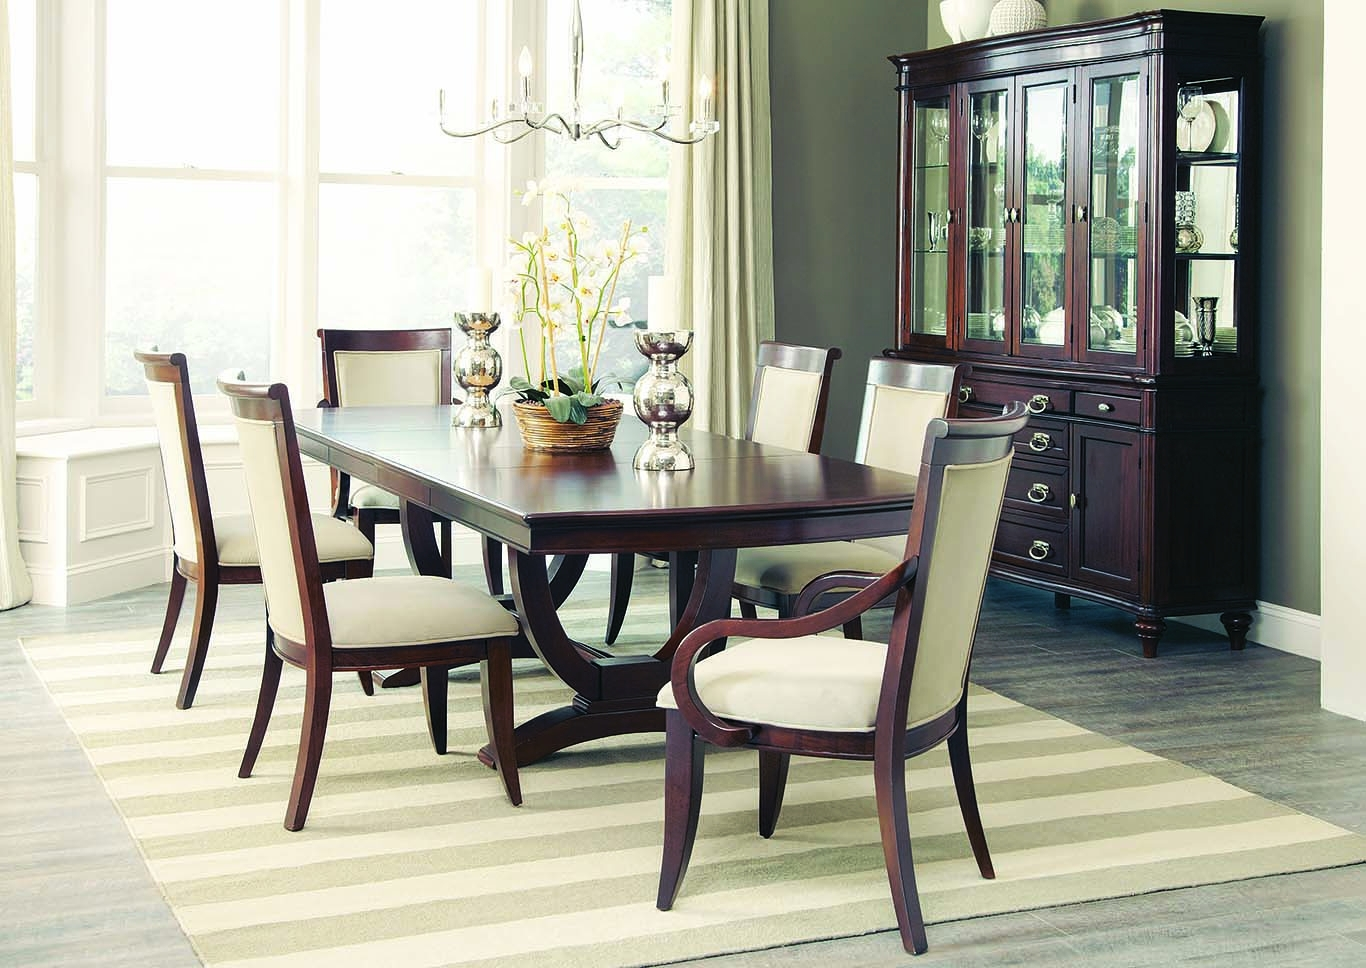 Furniture Expo – Baton Rouge, La Walnut Rectangular Extension Dining Inside Craftsman 7 Piece Rectangle Extension Dining Sets With Side Chairs (Image 11 of 25)